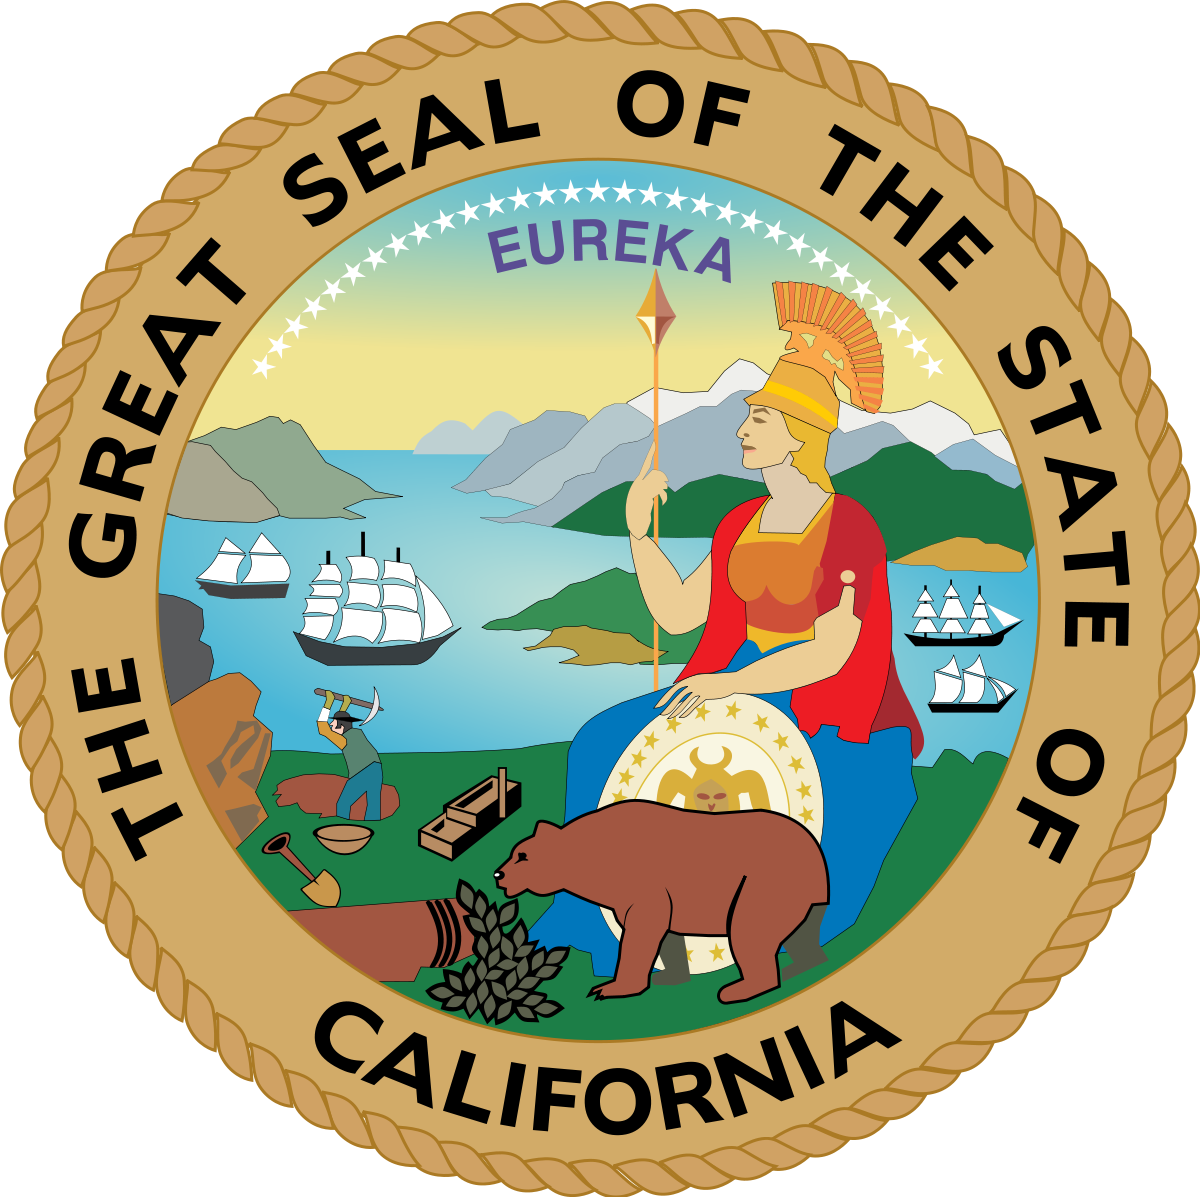 California's 34th congressional district special election, 2017.